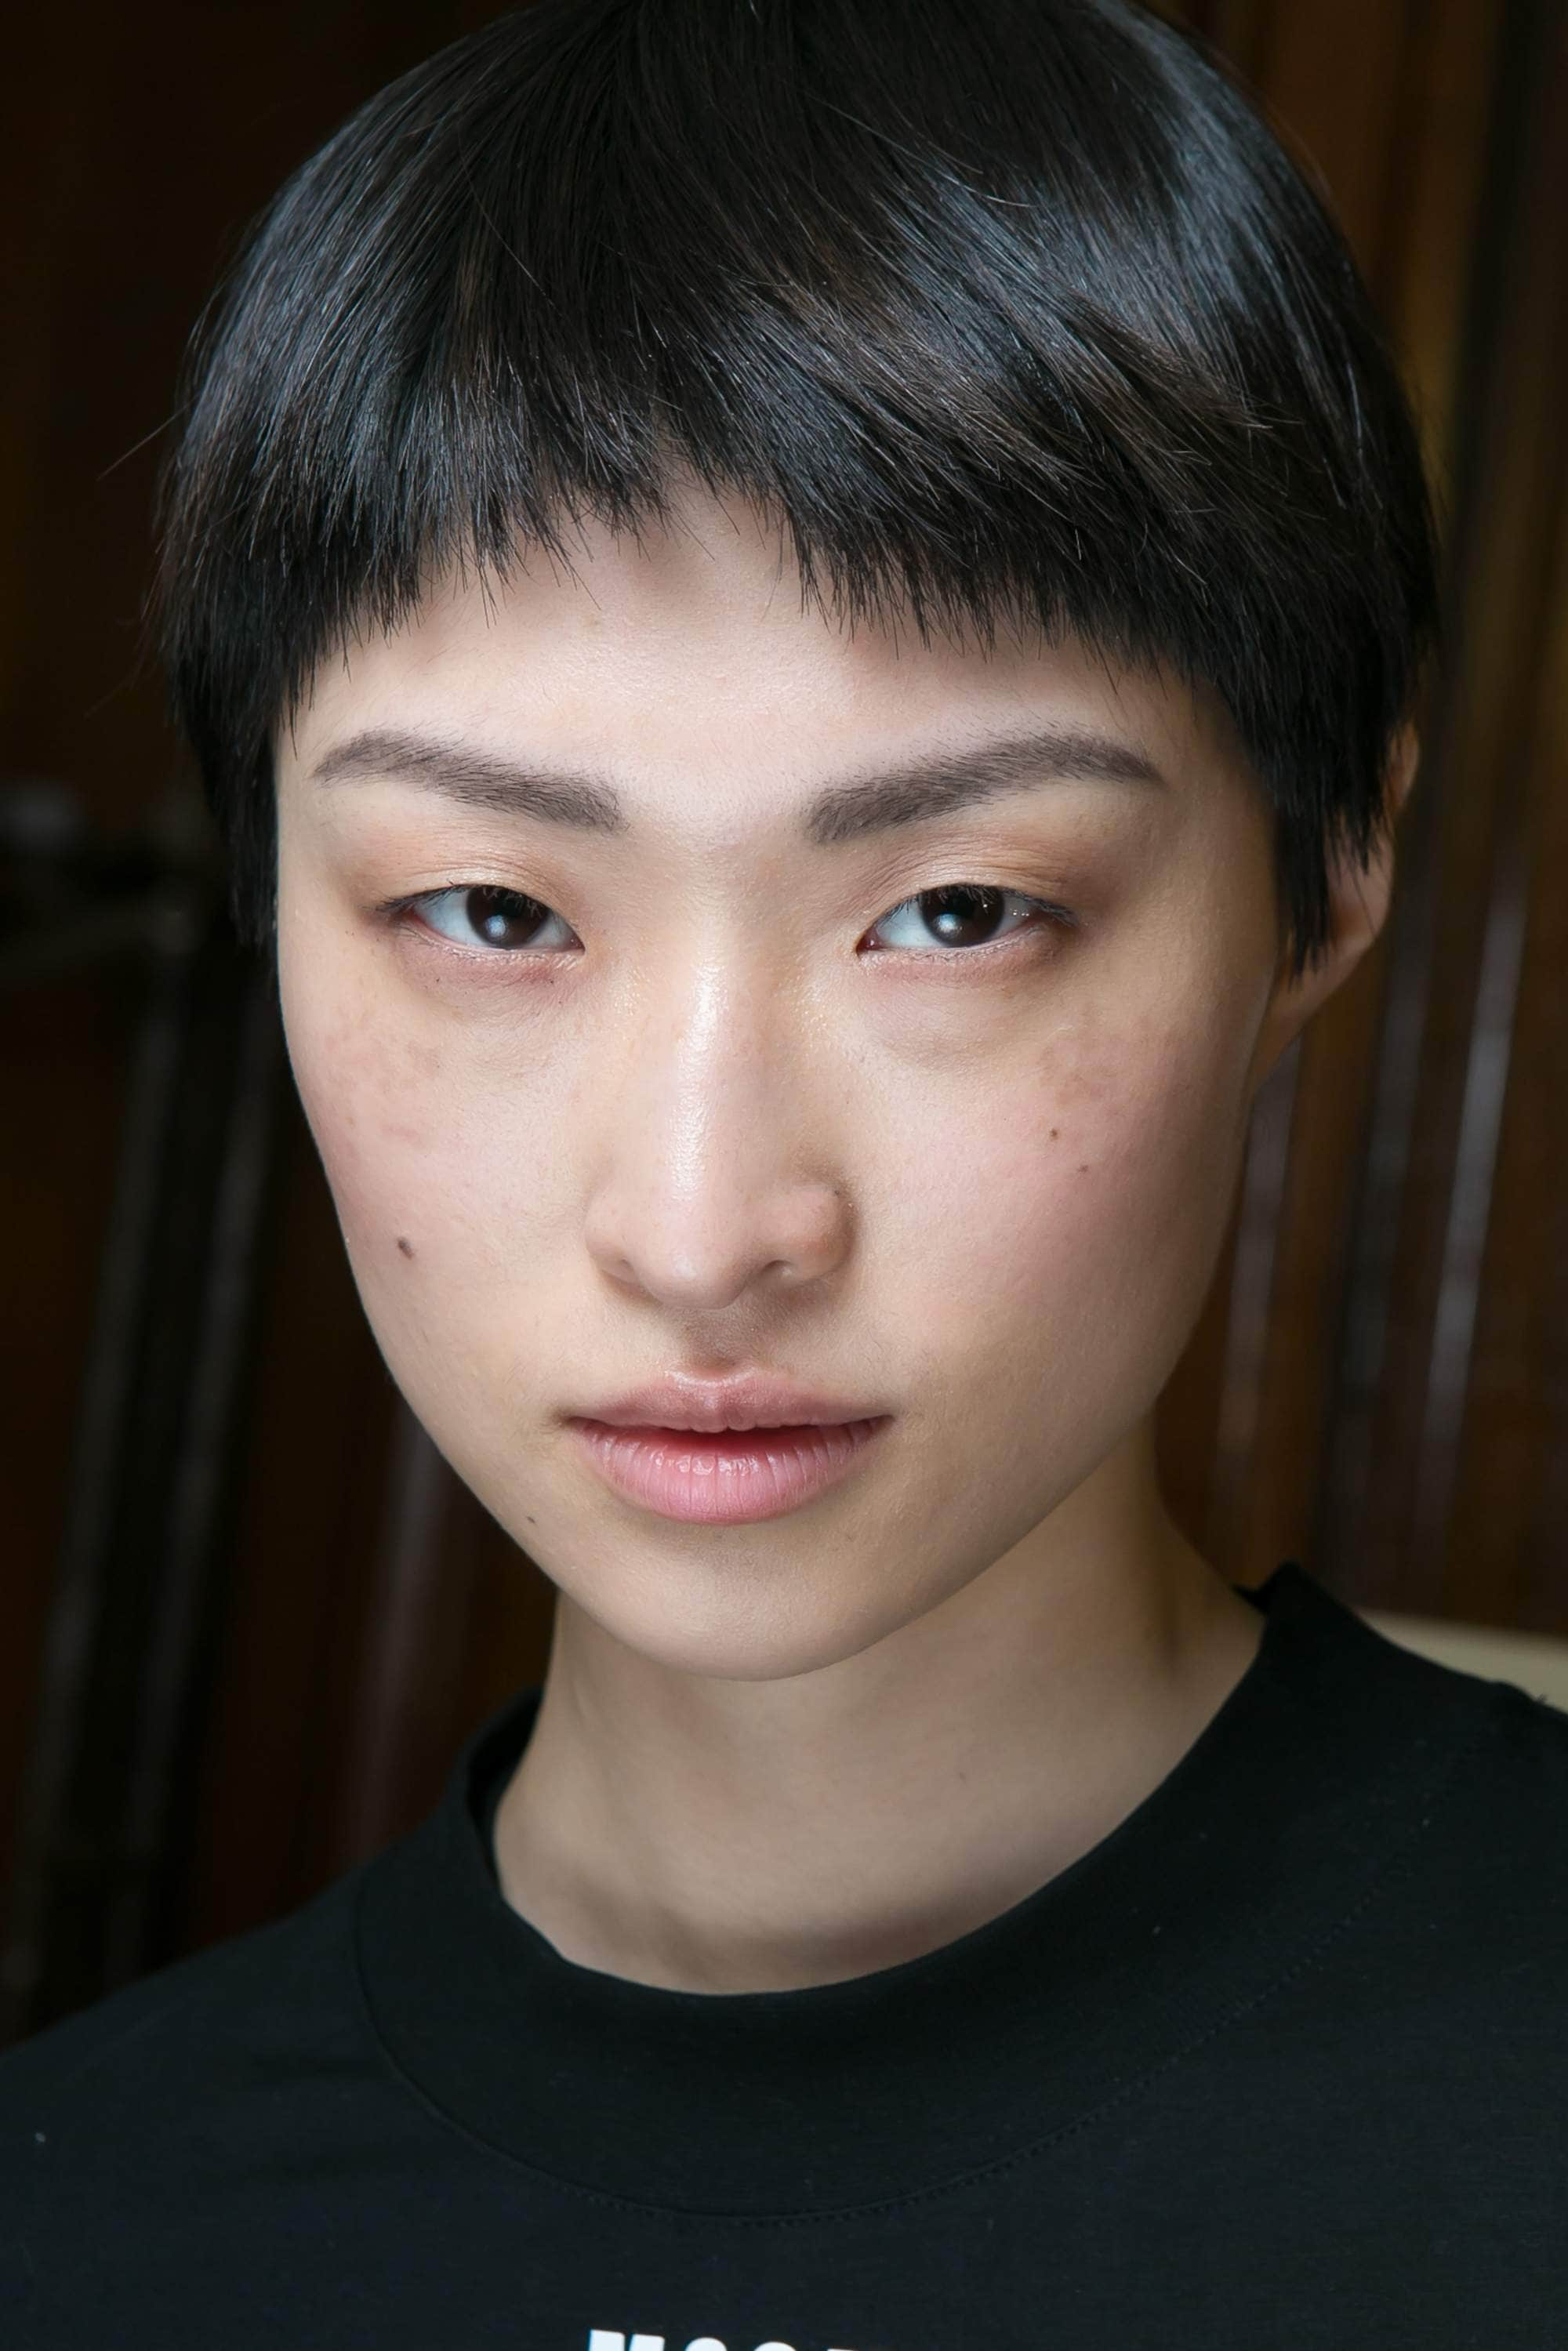 images of short haircuts: a fashionable pixie cut as shown by model backstage